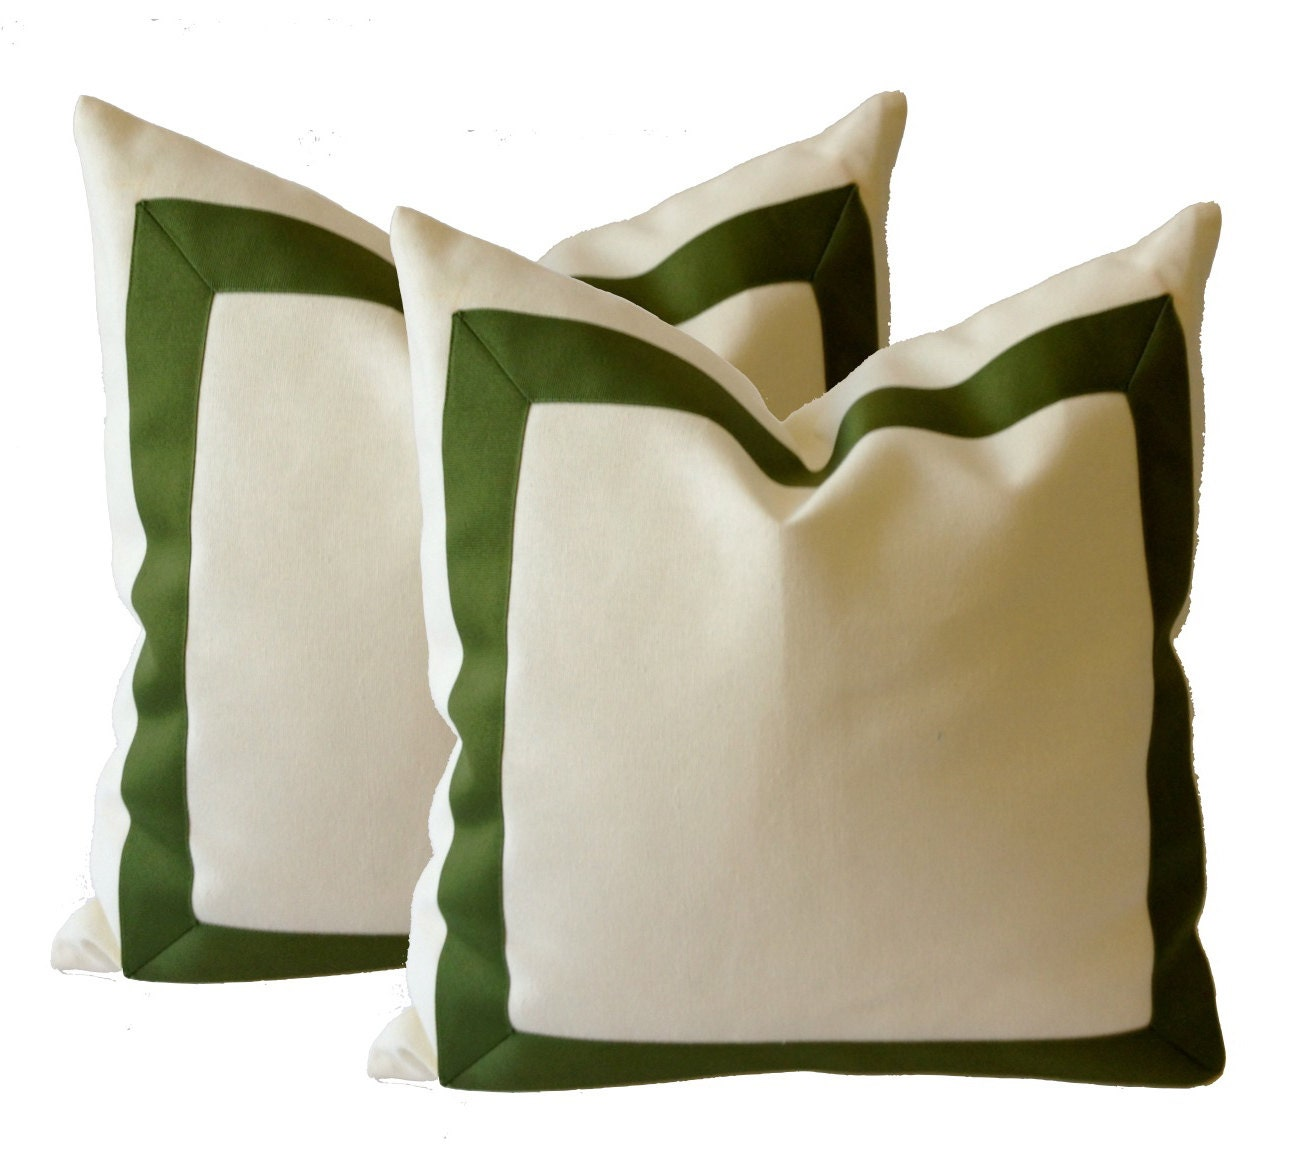 Throw Pillow Covers White : Decorative Throw Pillow Cover in White Cotton Canvas with Oilve Green Grosgrain Ribbon Border ...